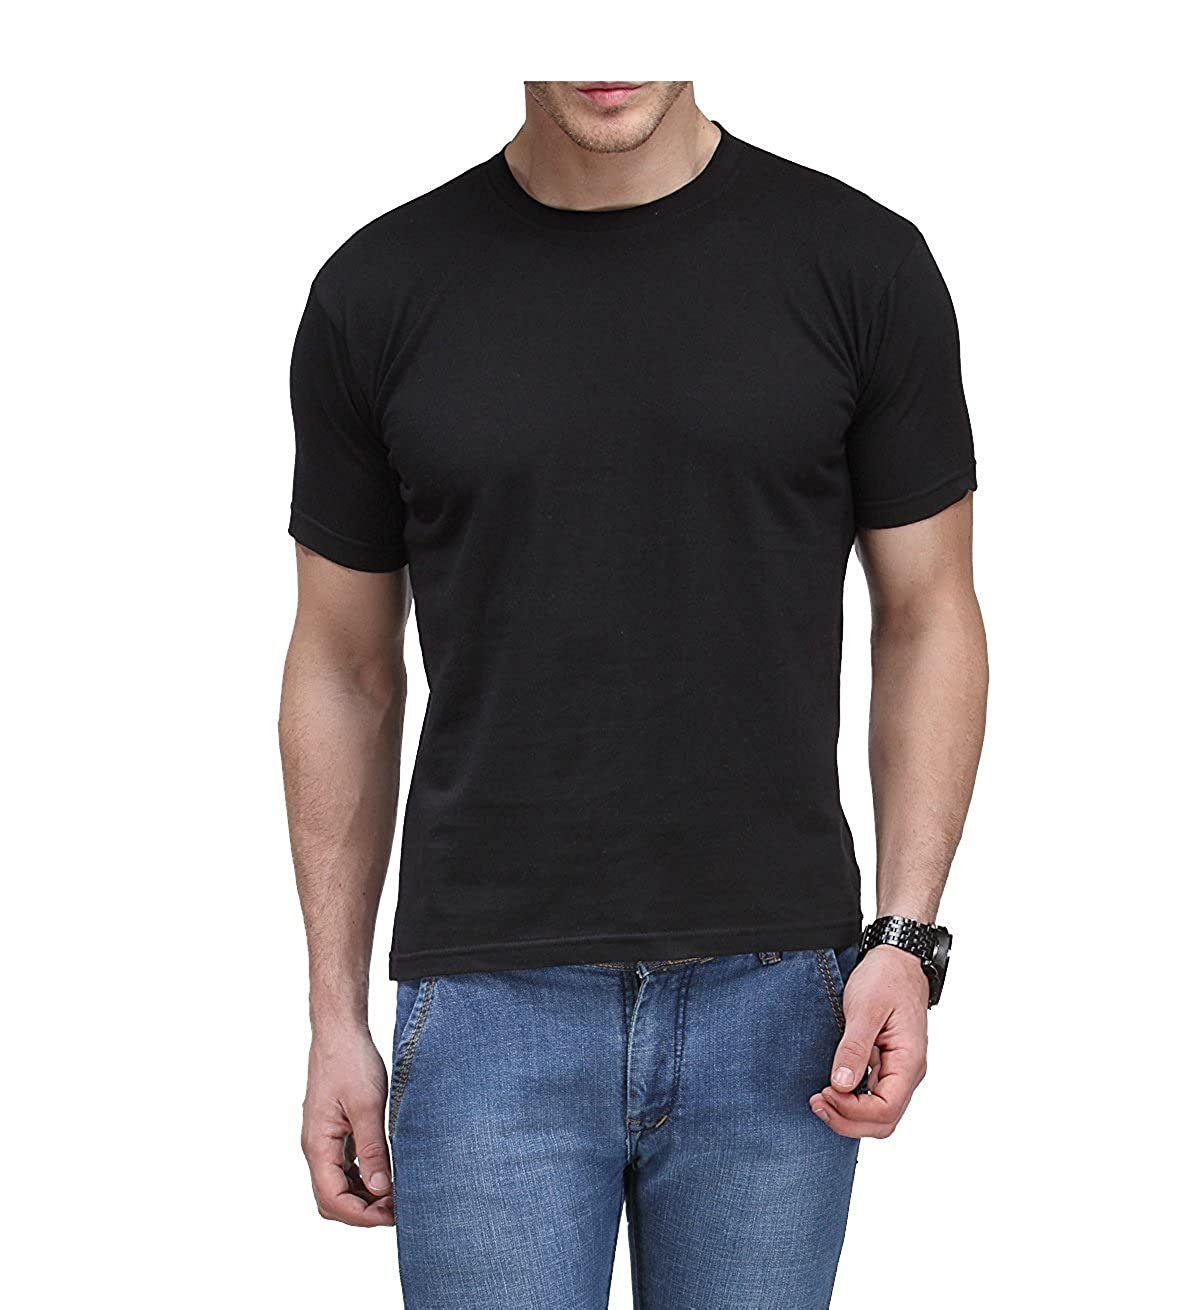 2c8573ddc Gagkac Men's Micro Polyester Dry Fit Round Neck Half Sleeve Plain X-Large  GE-BLK3 Black T-Shirt: Amazon.in: Clothing & Accessories